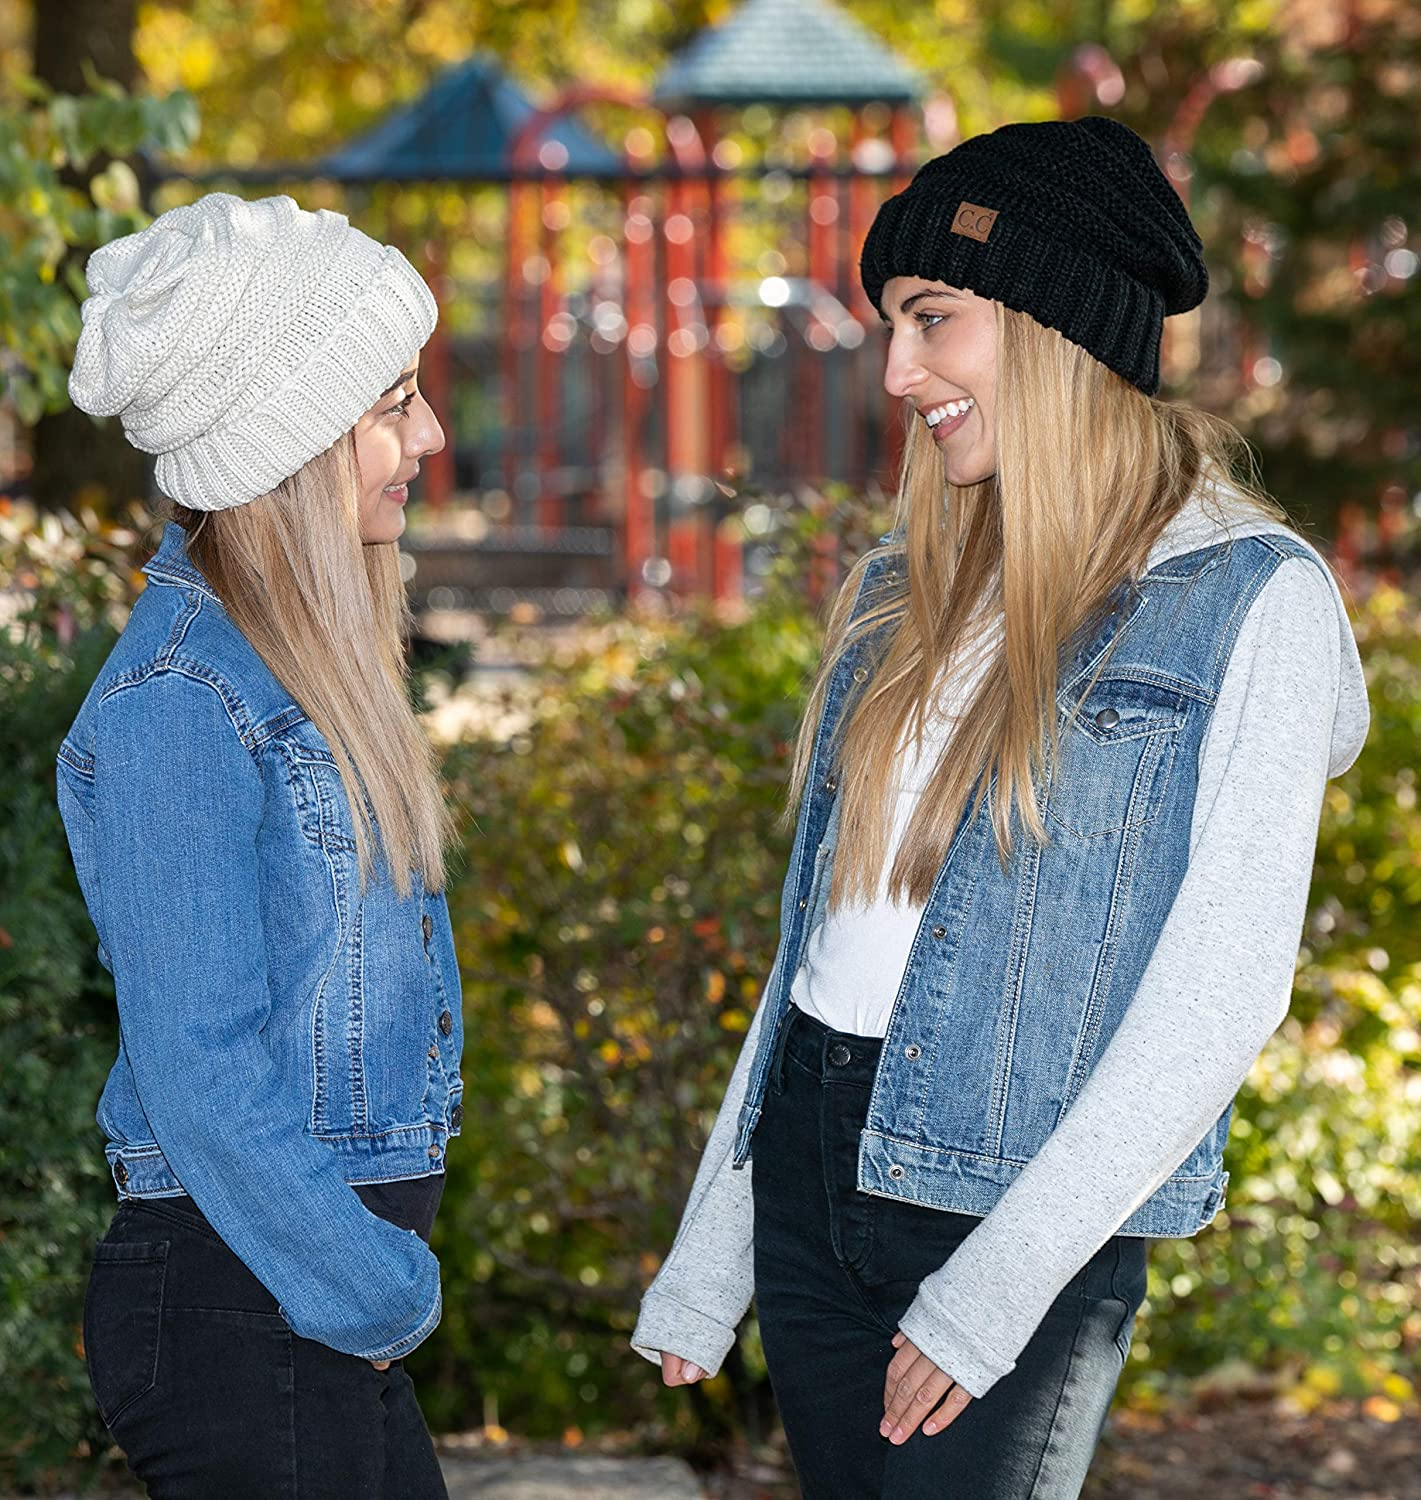 BeautyFaves Fleece Lined Soft and Thick Sparkling Sequin Fashion Winter Beanie